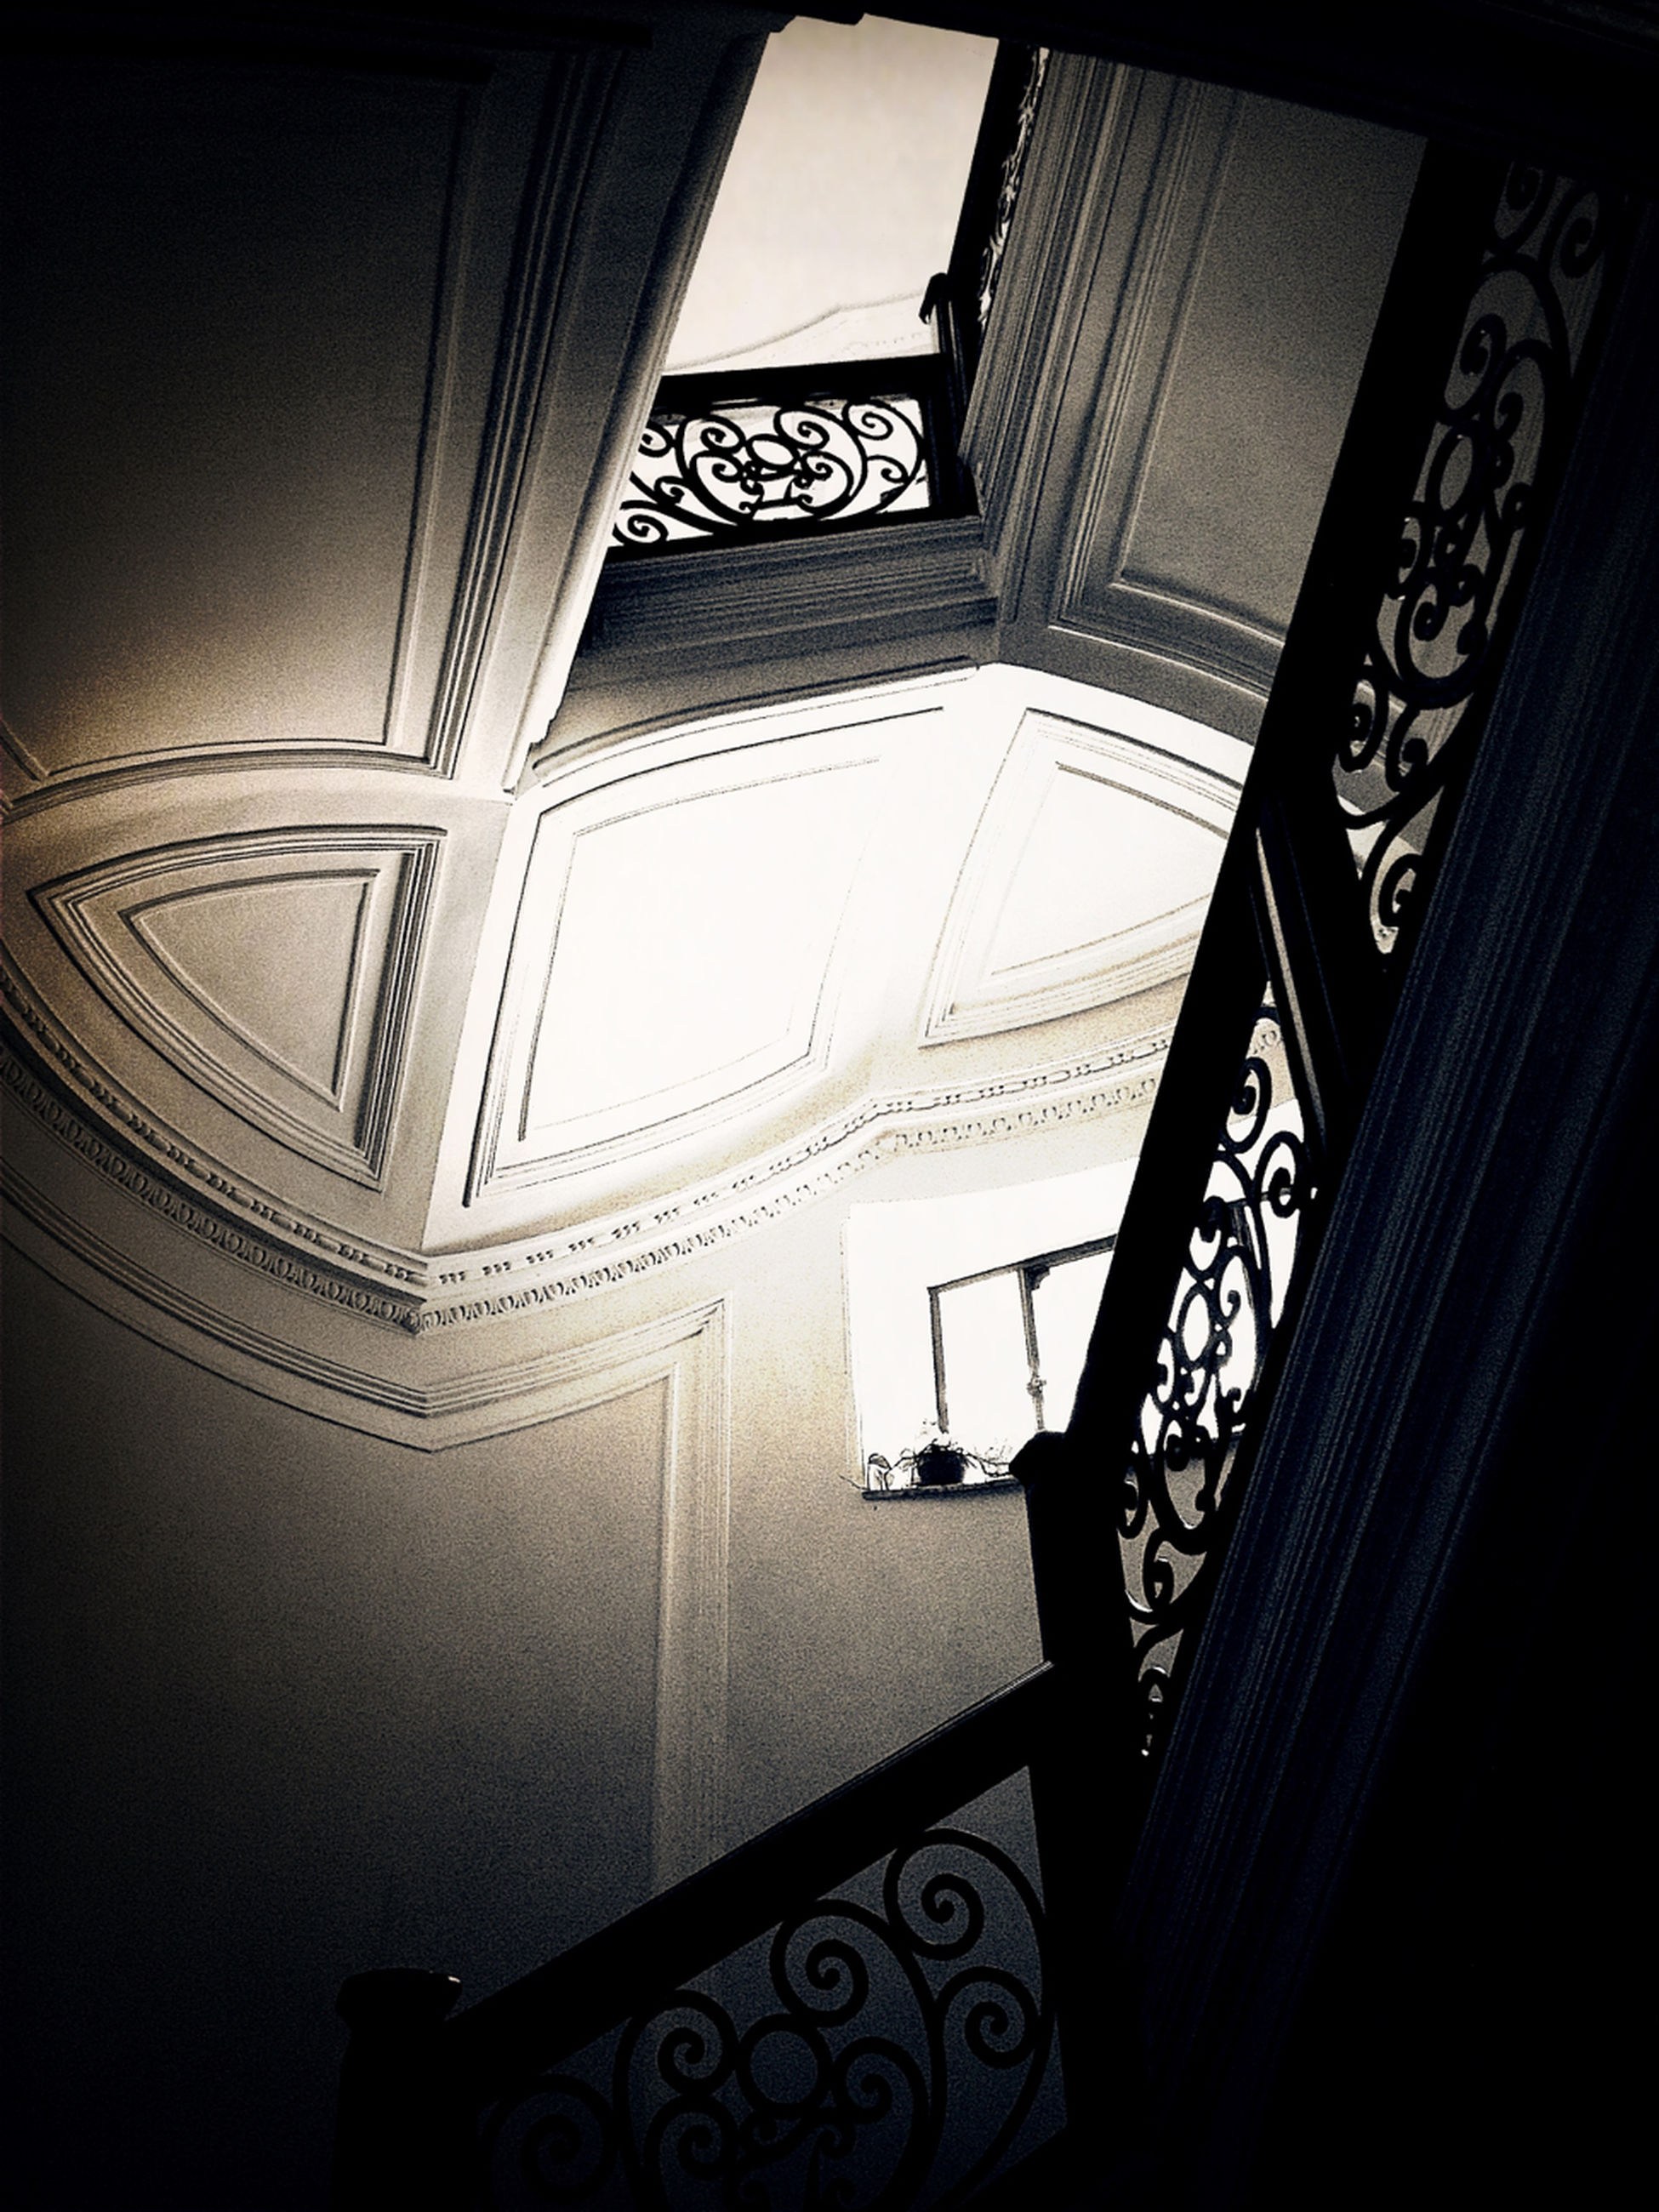 indoors, architecture, built structure, low angle view, ceiling, design, pattern, railing, staircase, steps, steps and staircases, window, building, architectural feature, directly below, sunlight, building exterior, no people, skylight, shadow